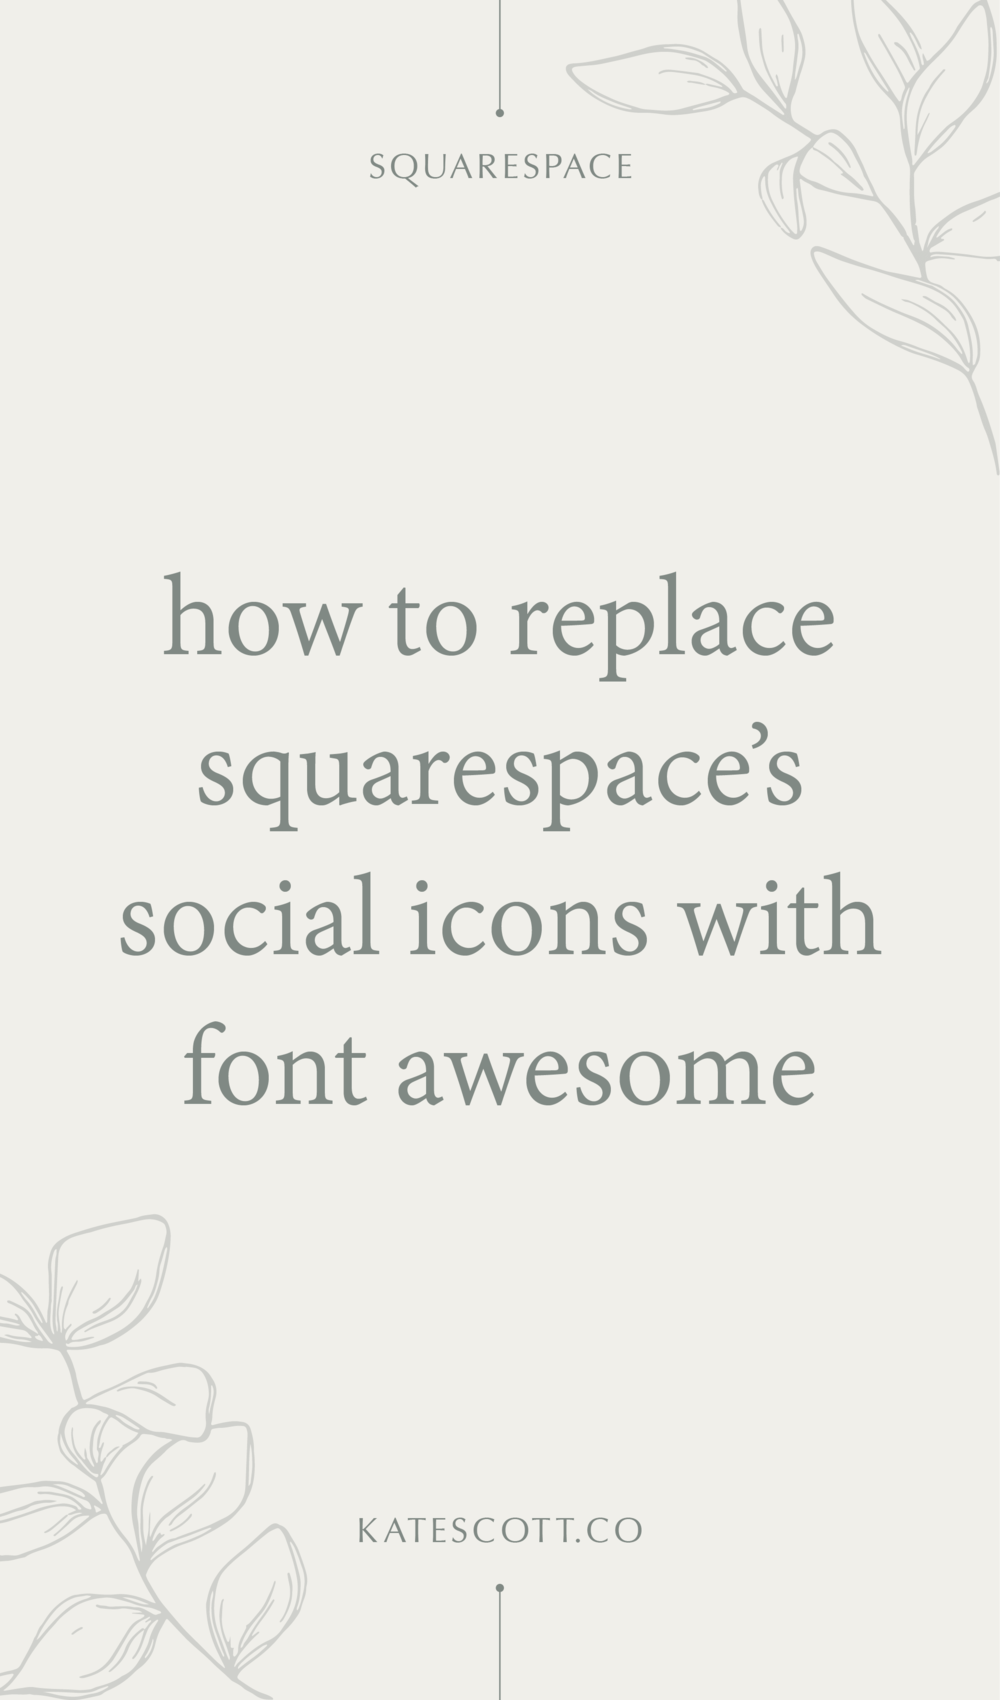 How to Replace Squarespace's Social Icons with FontAwesome